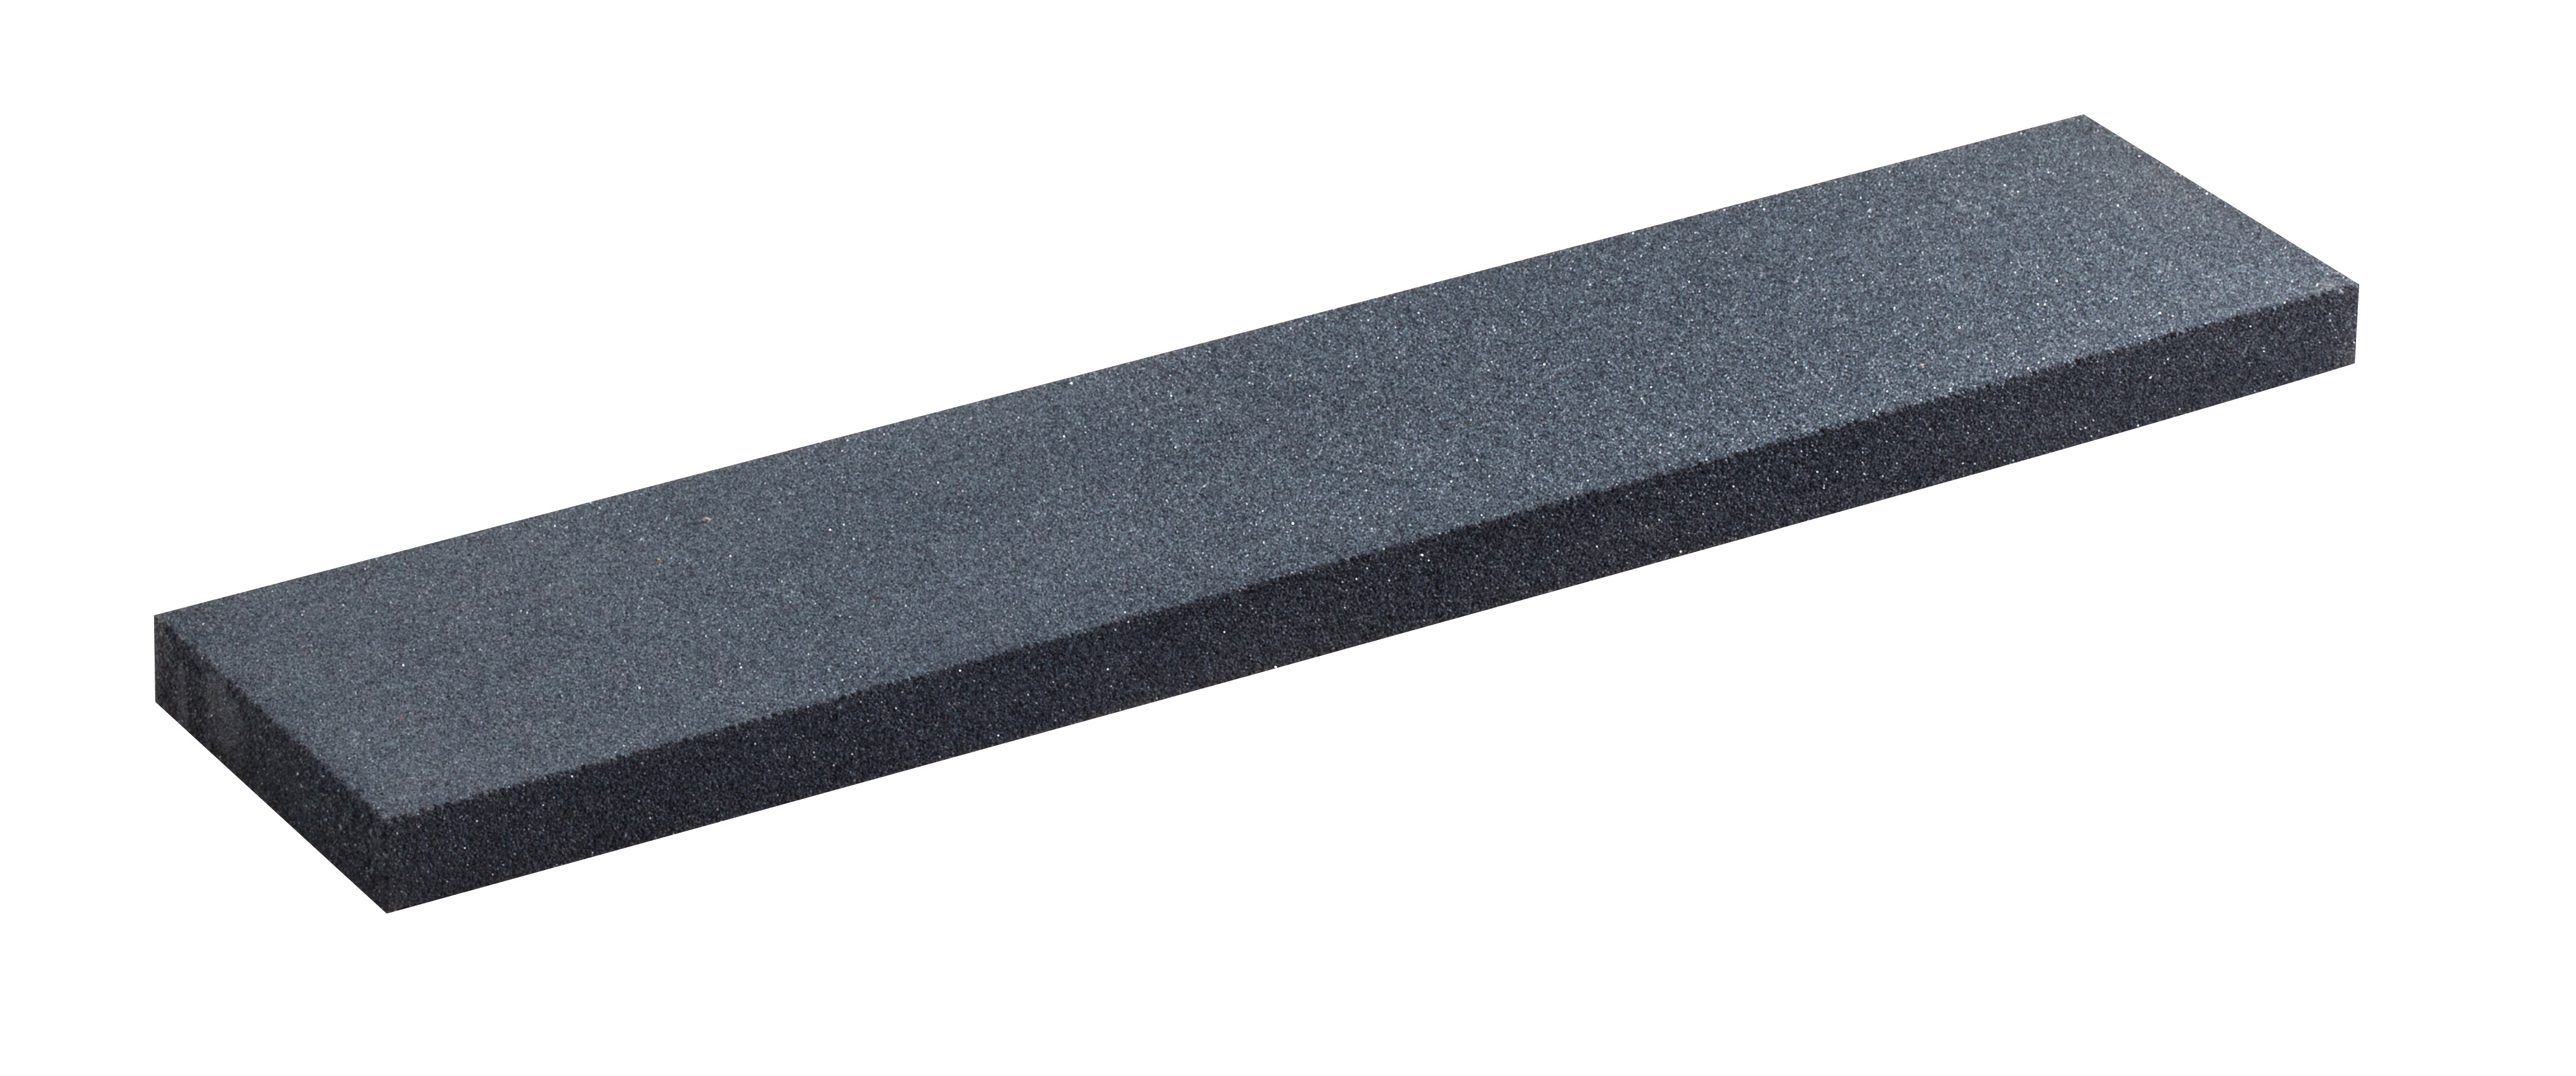 Mercer Culinary M15933 knife, sharpening stone